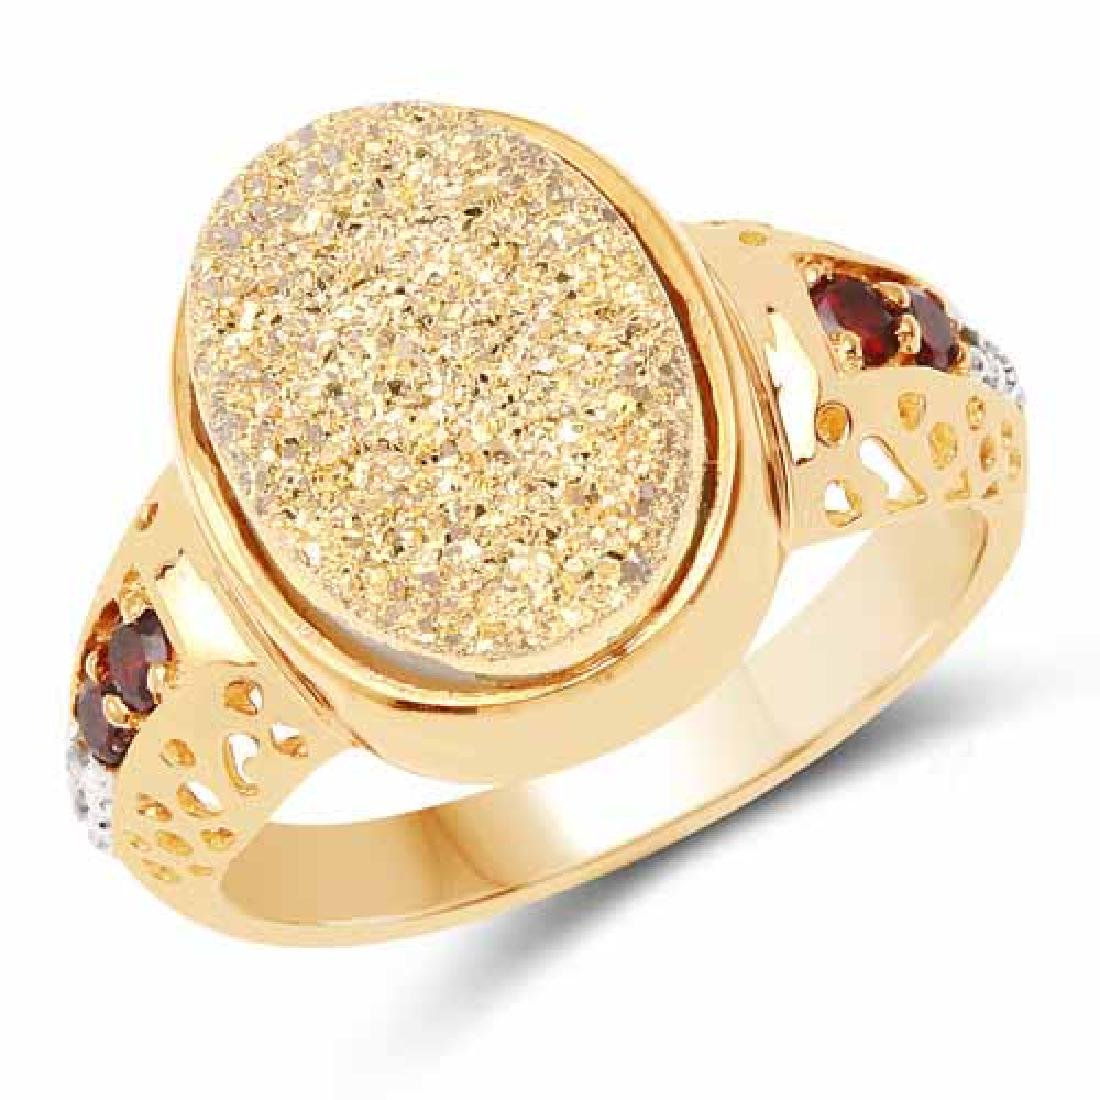 14K Yellow Gold Plated 4.71 Carat Genuine Golden Drusy